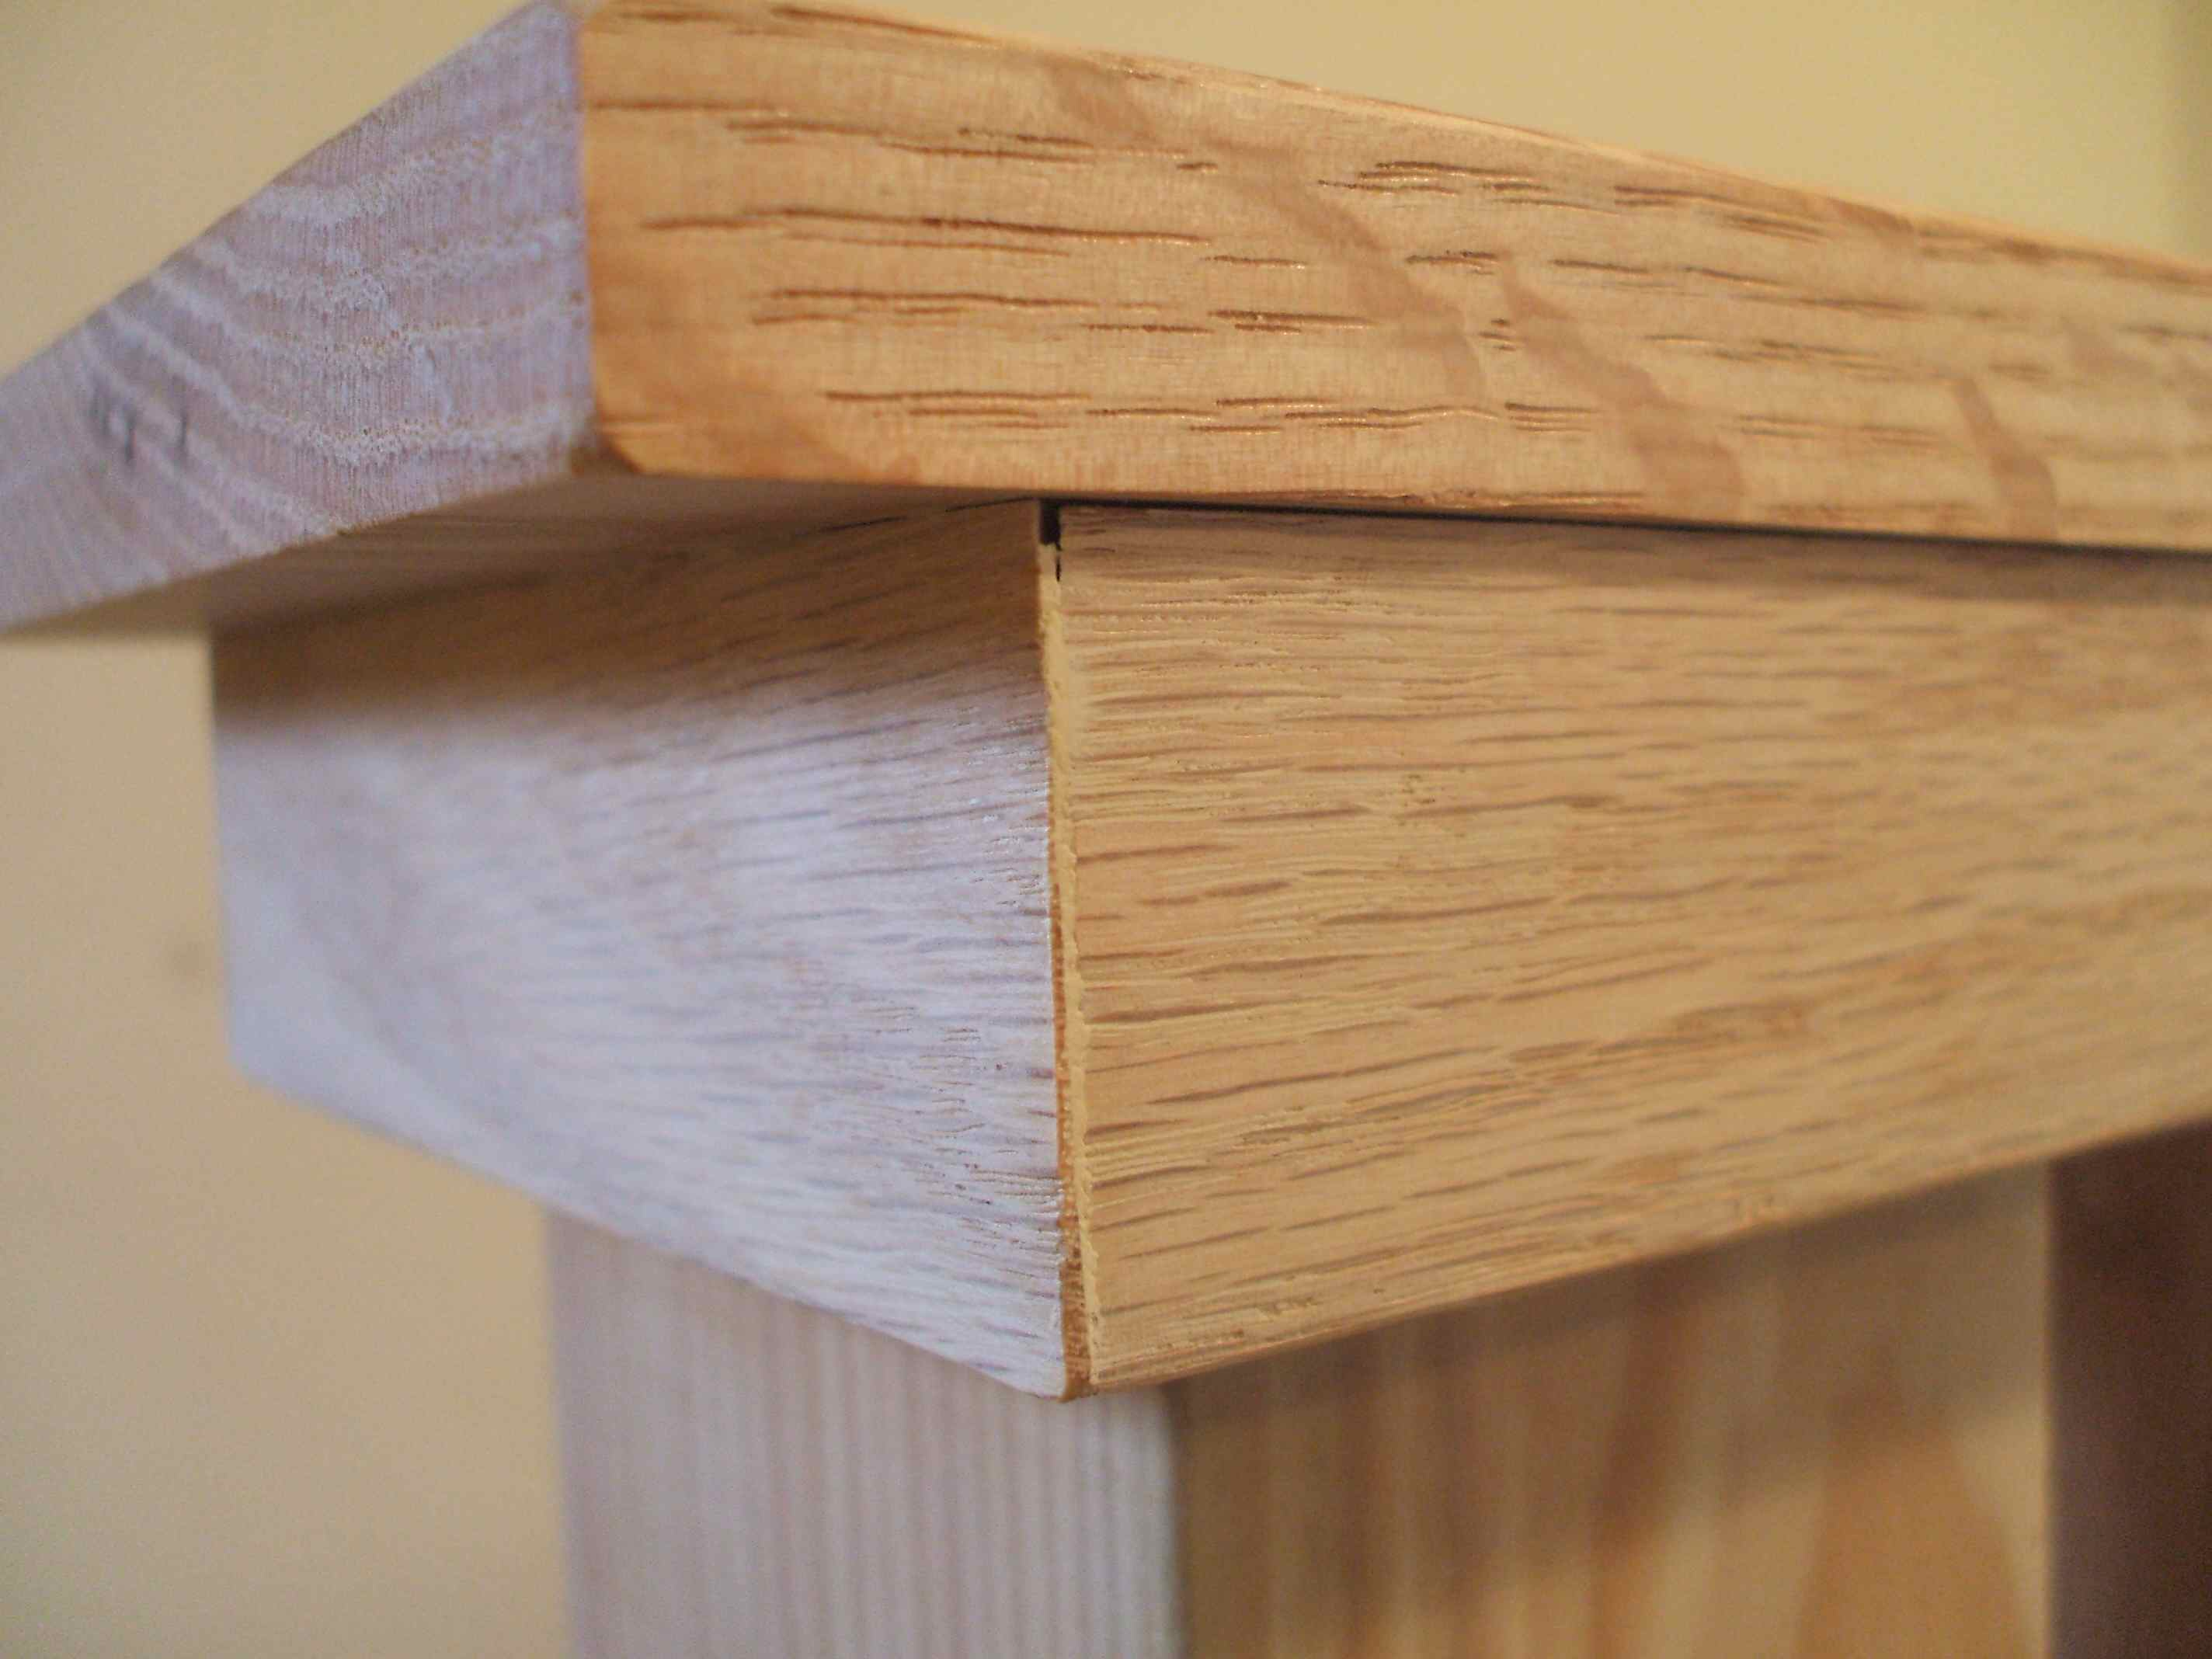 Wood Putty for Strong Bond - Finished Product